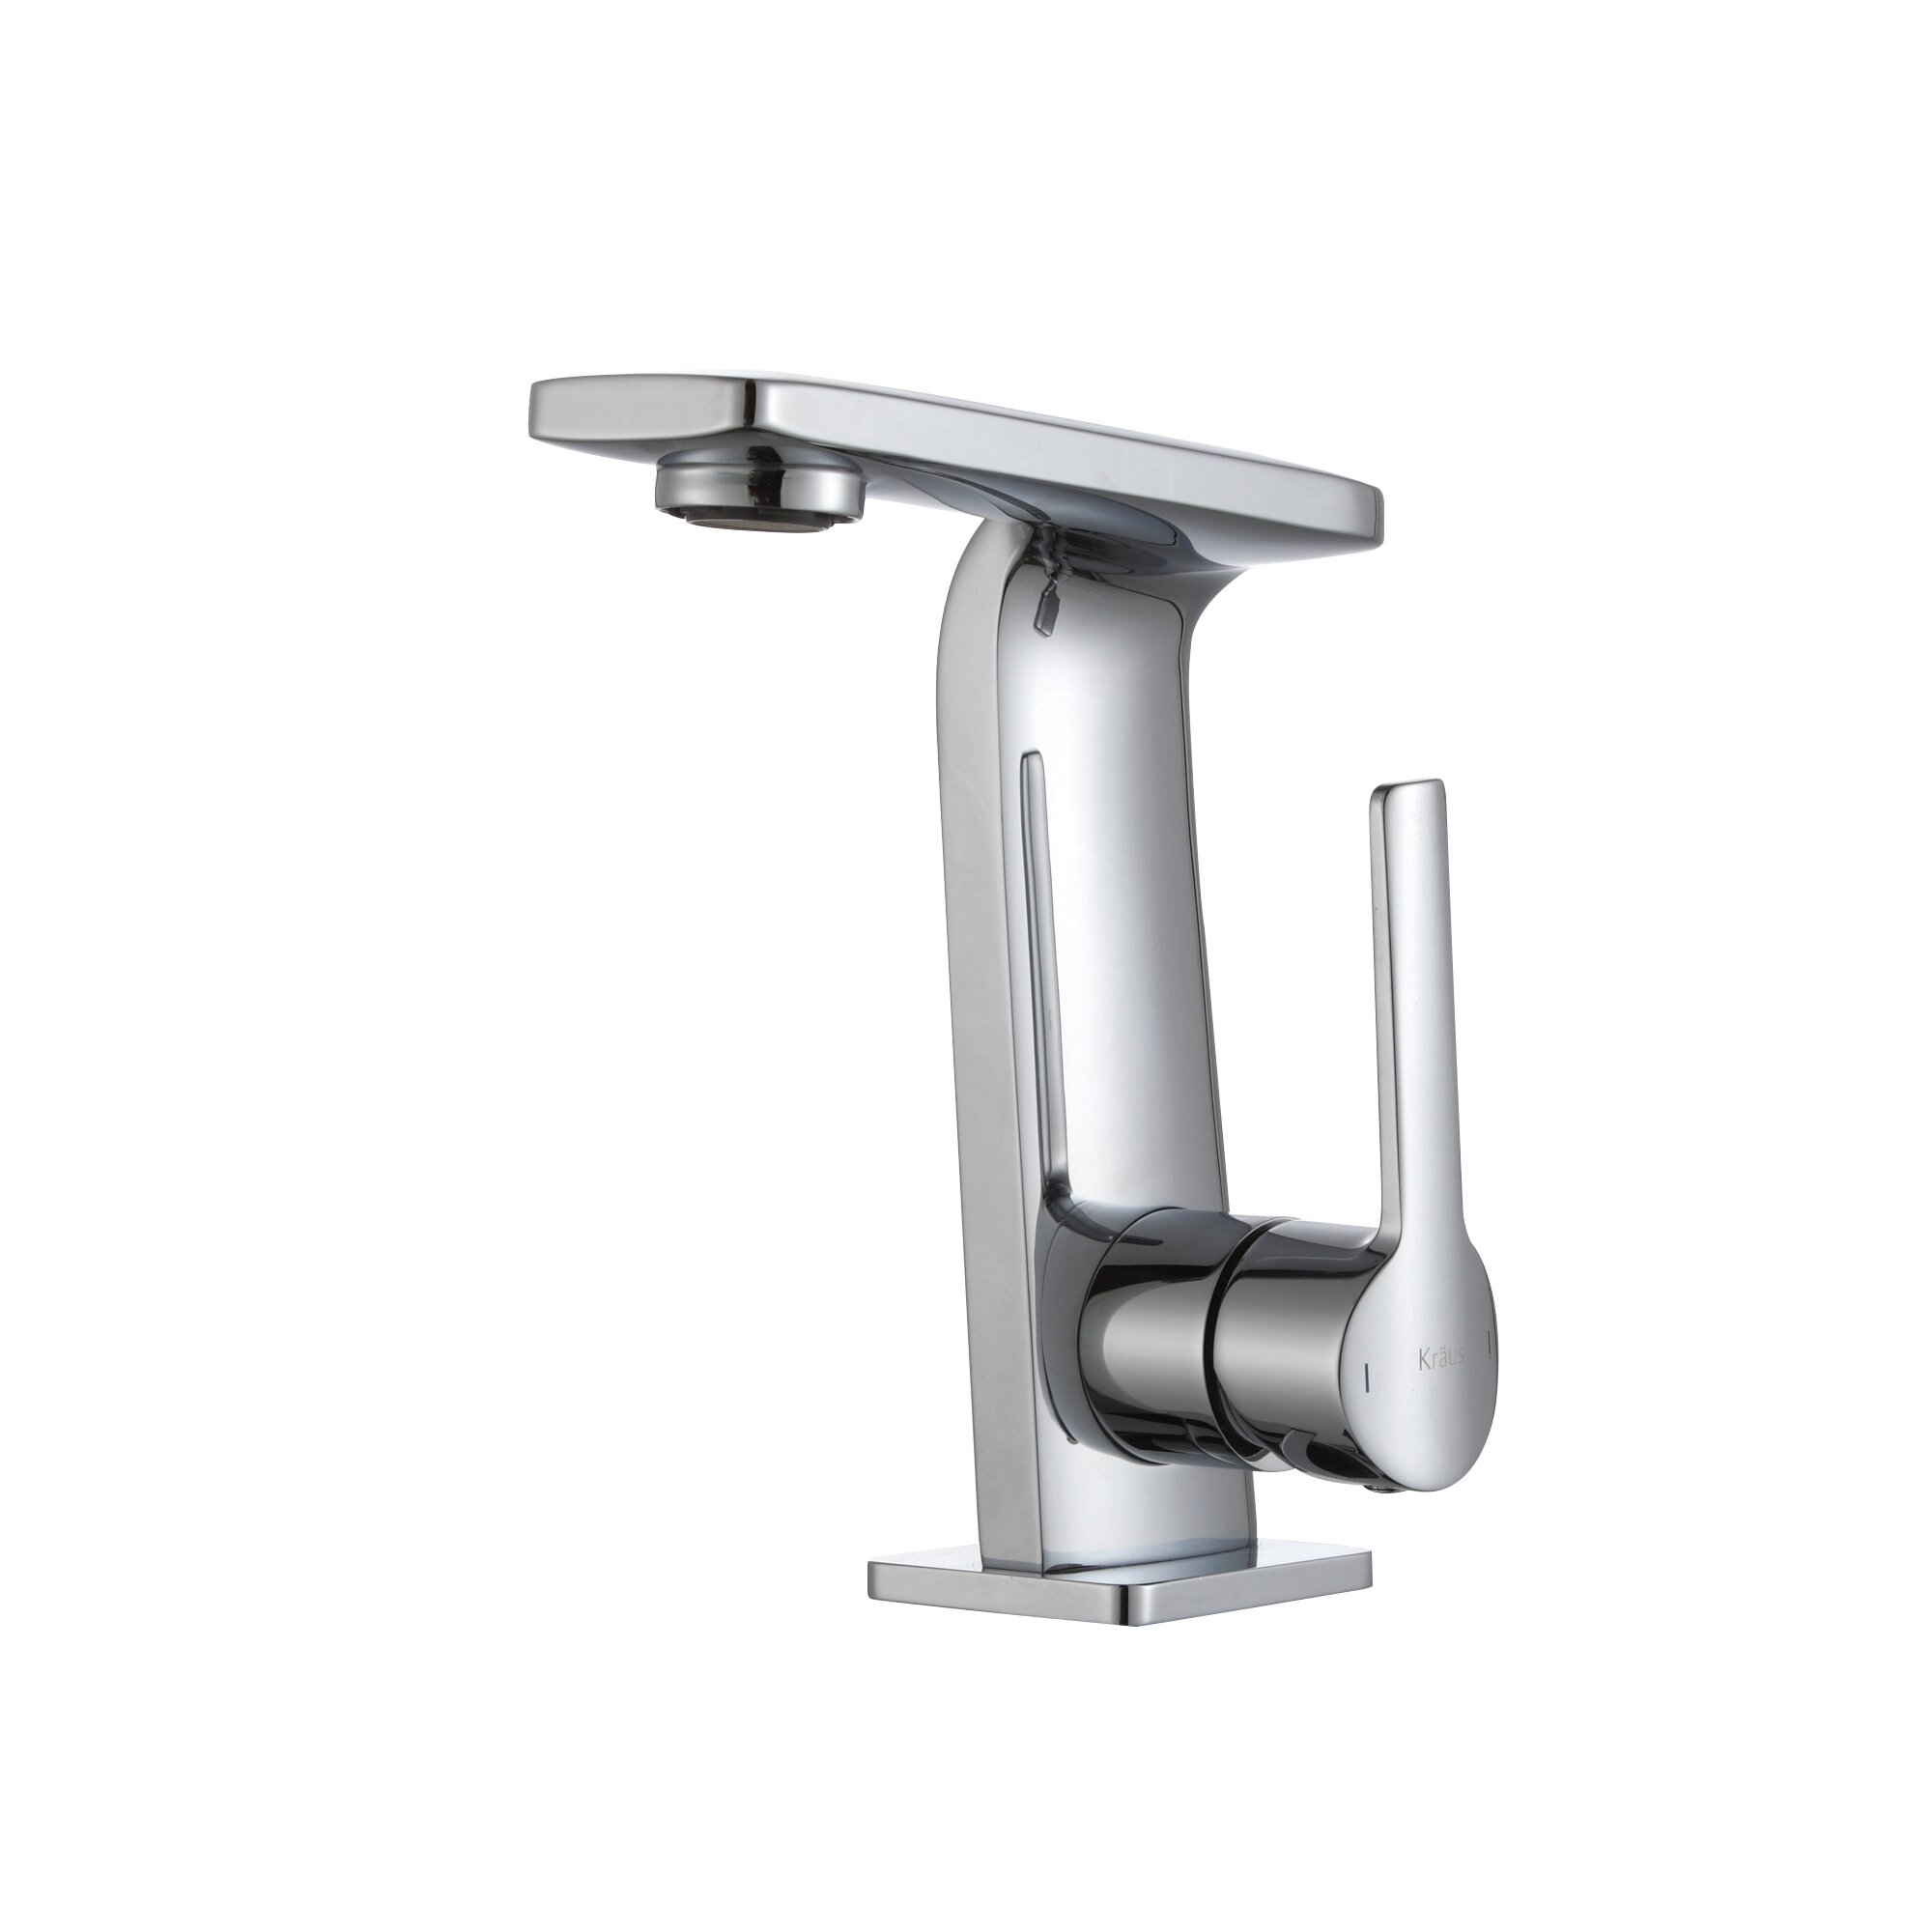 Kraus Faucets Reviews : Kraus Exquisite Single Handle Basin Faucet & Reviews Wayfair